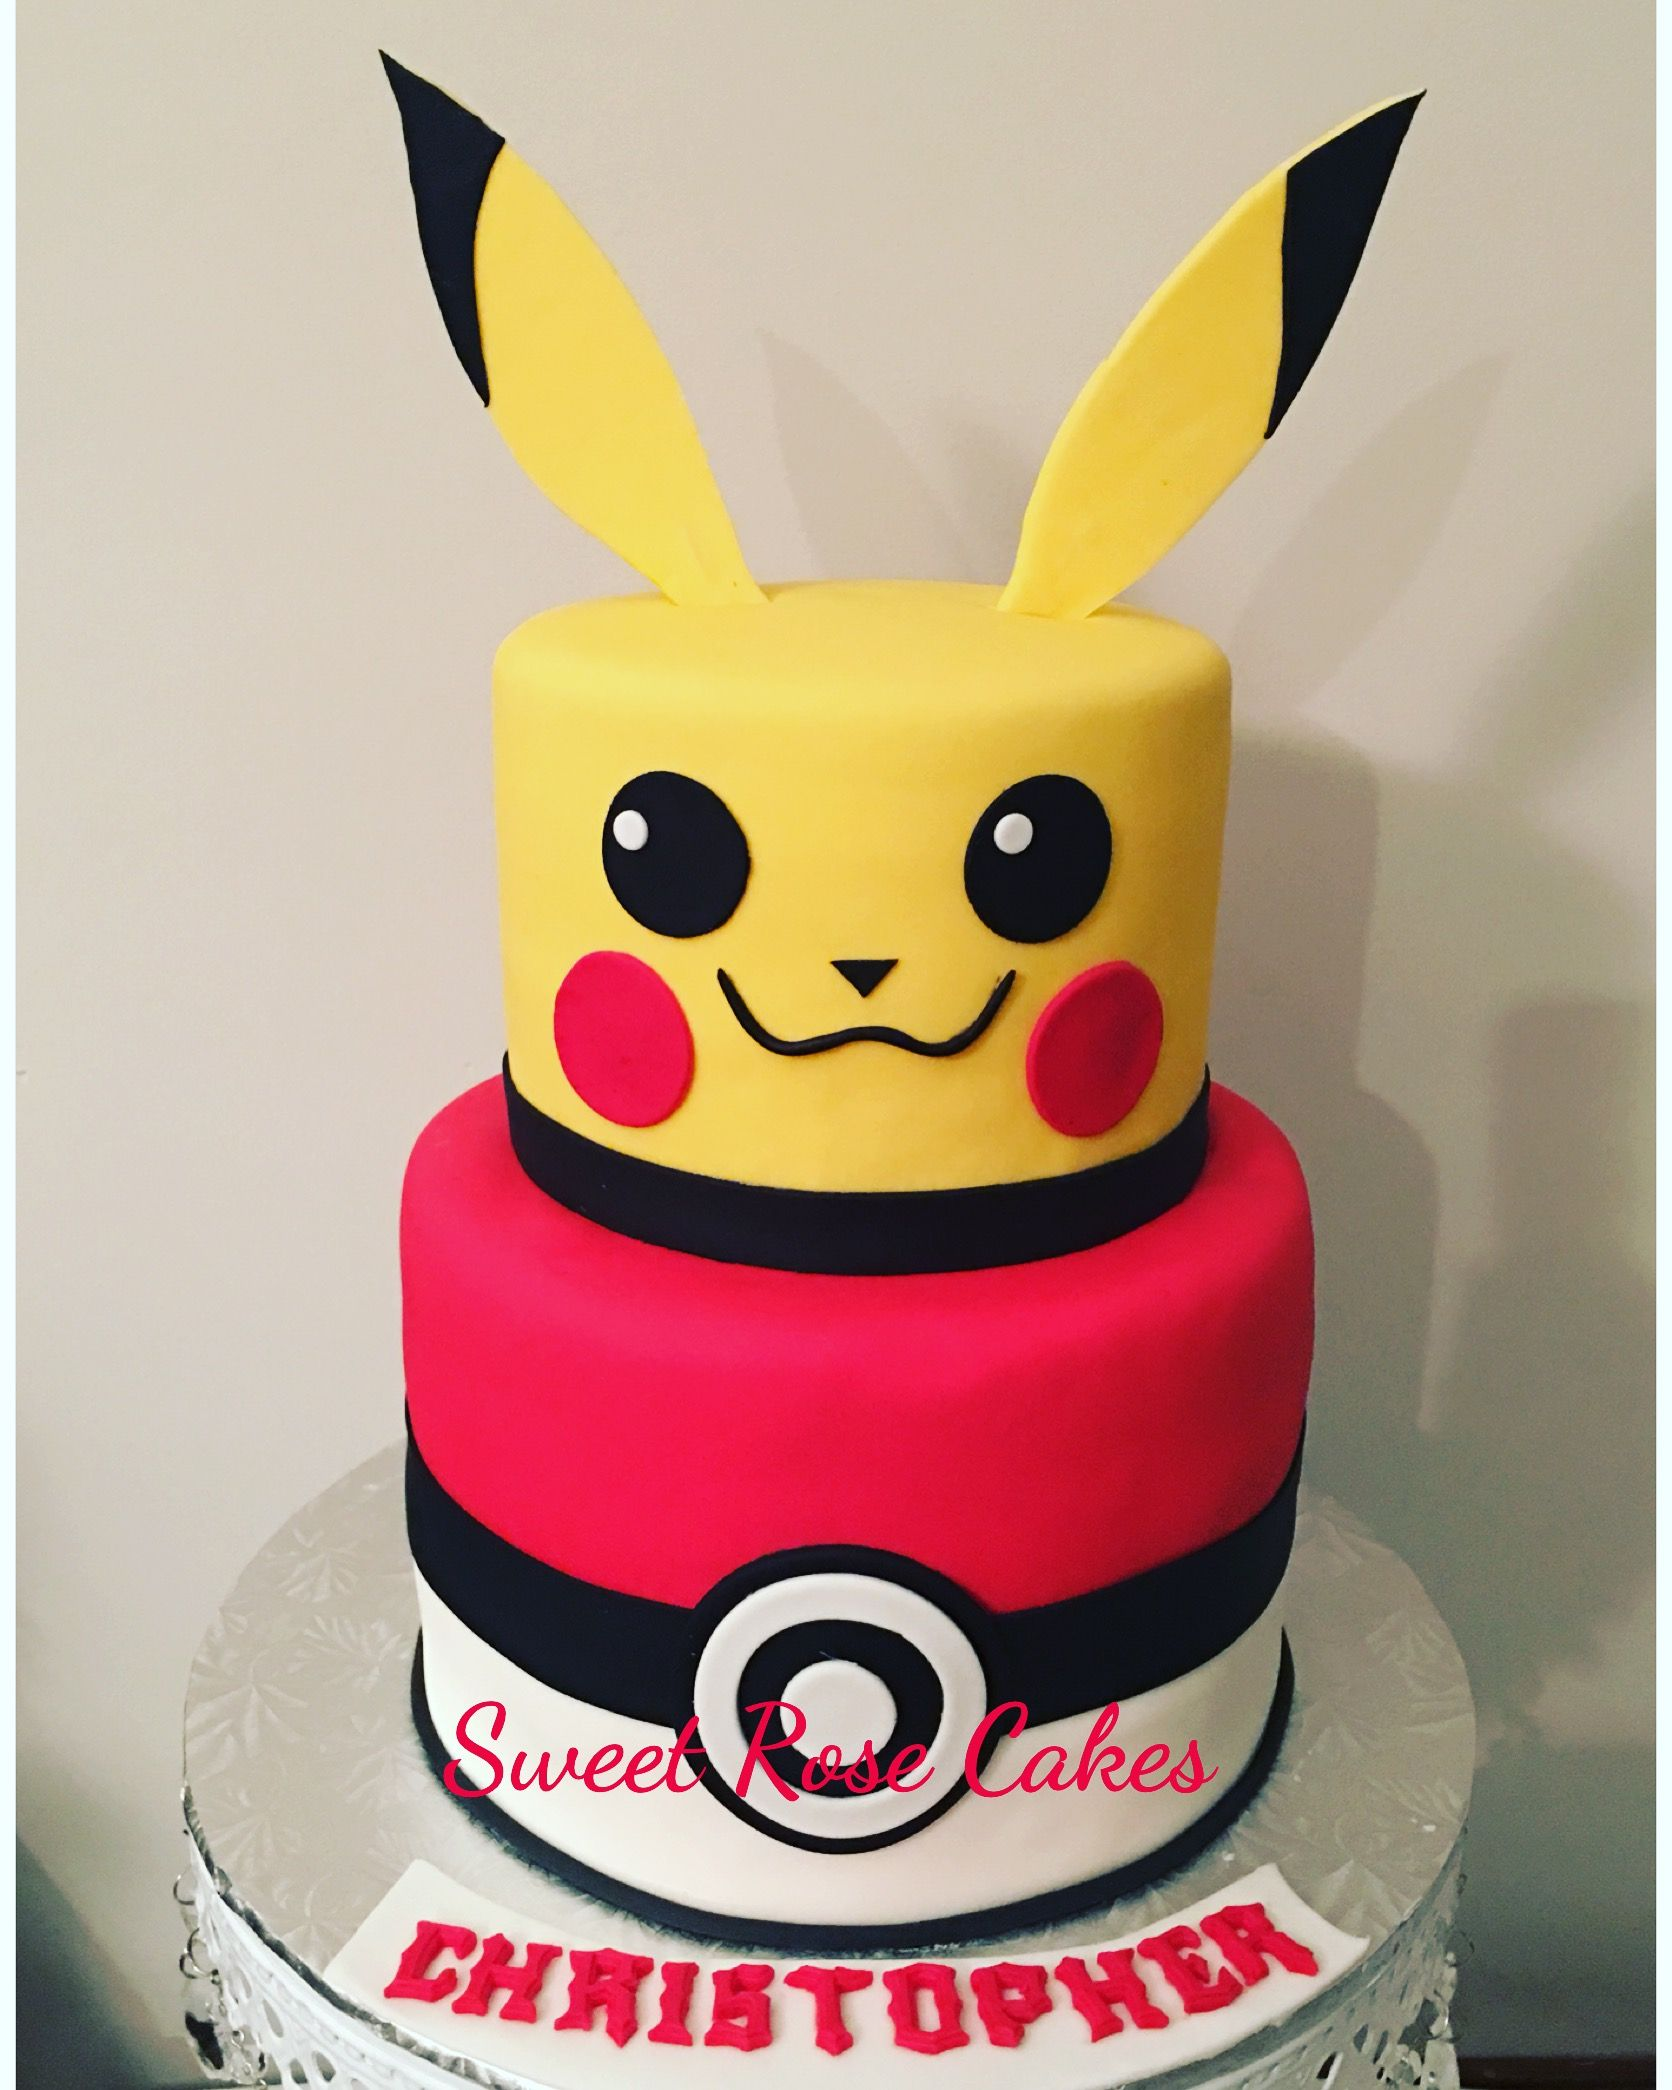 Pikachu pokemon cake fondant pokemongo cake custom cakes by